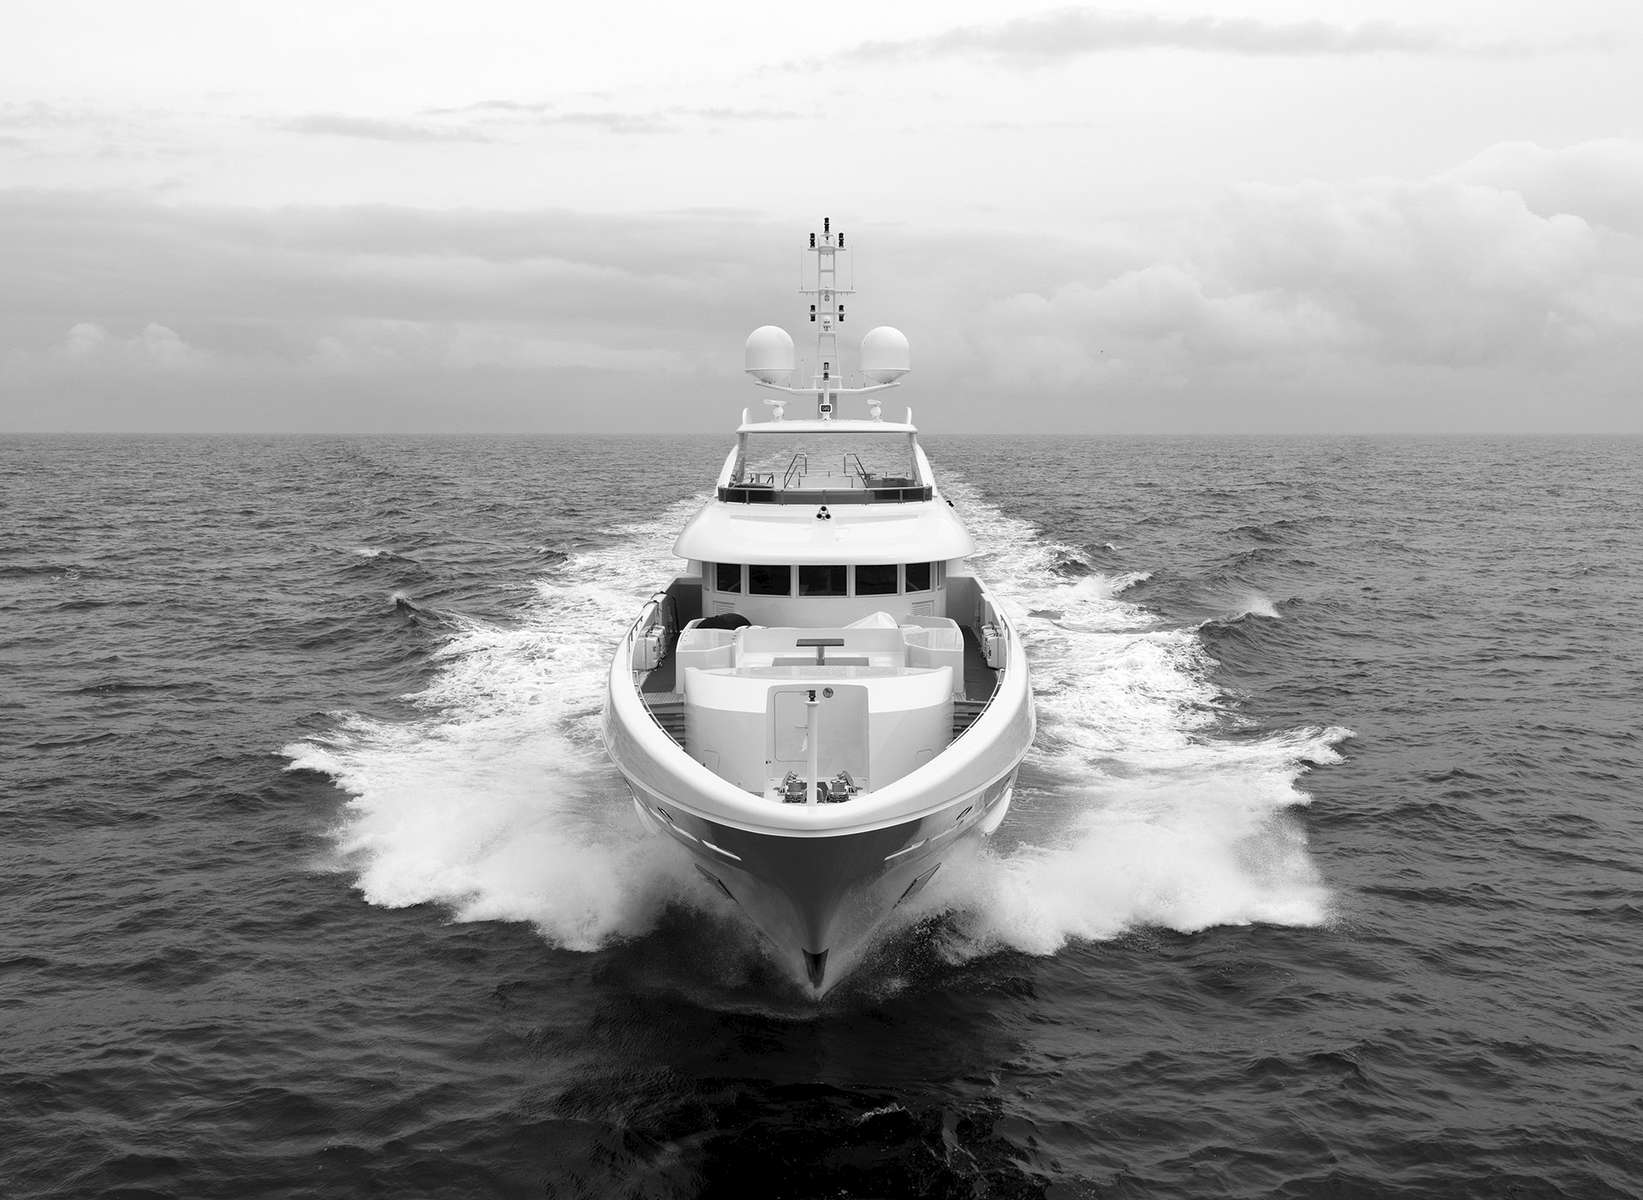 Heesen yachtsSeatrials at the North Sea, June 2012.Image taken with Hasselblad H3DII-50